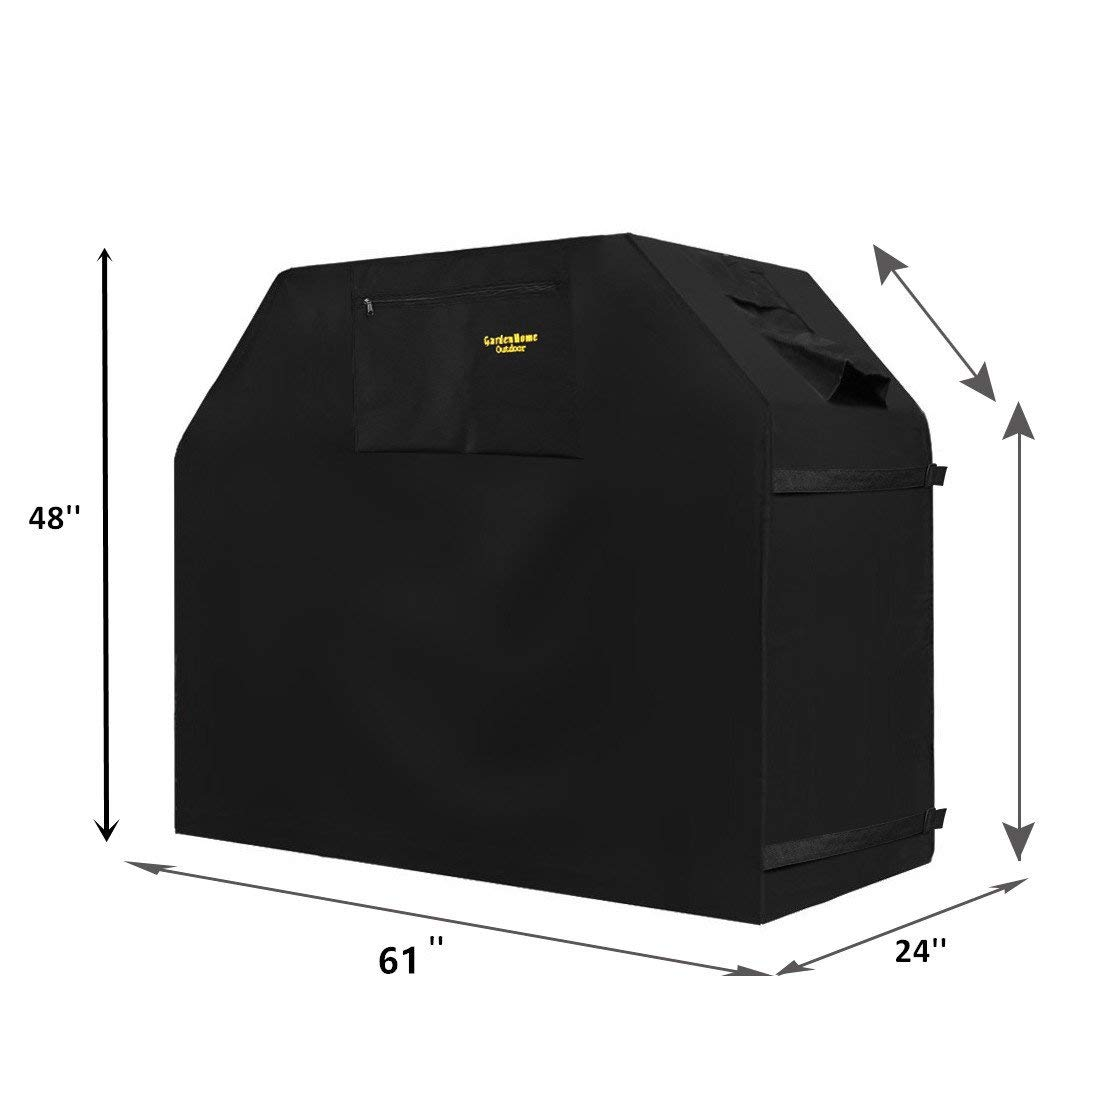 """Felicite Home Grill Cover Up to 61"""" Wide, Water Resistant, Air Vents, Padded Handles, Elastic hem cord - Heavy Duty burner gas BBQ grill Cover, Black"""